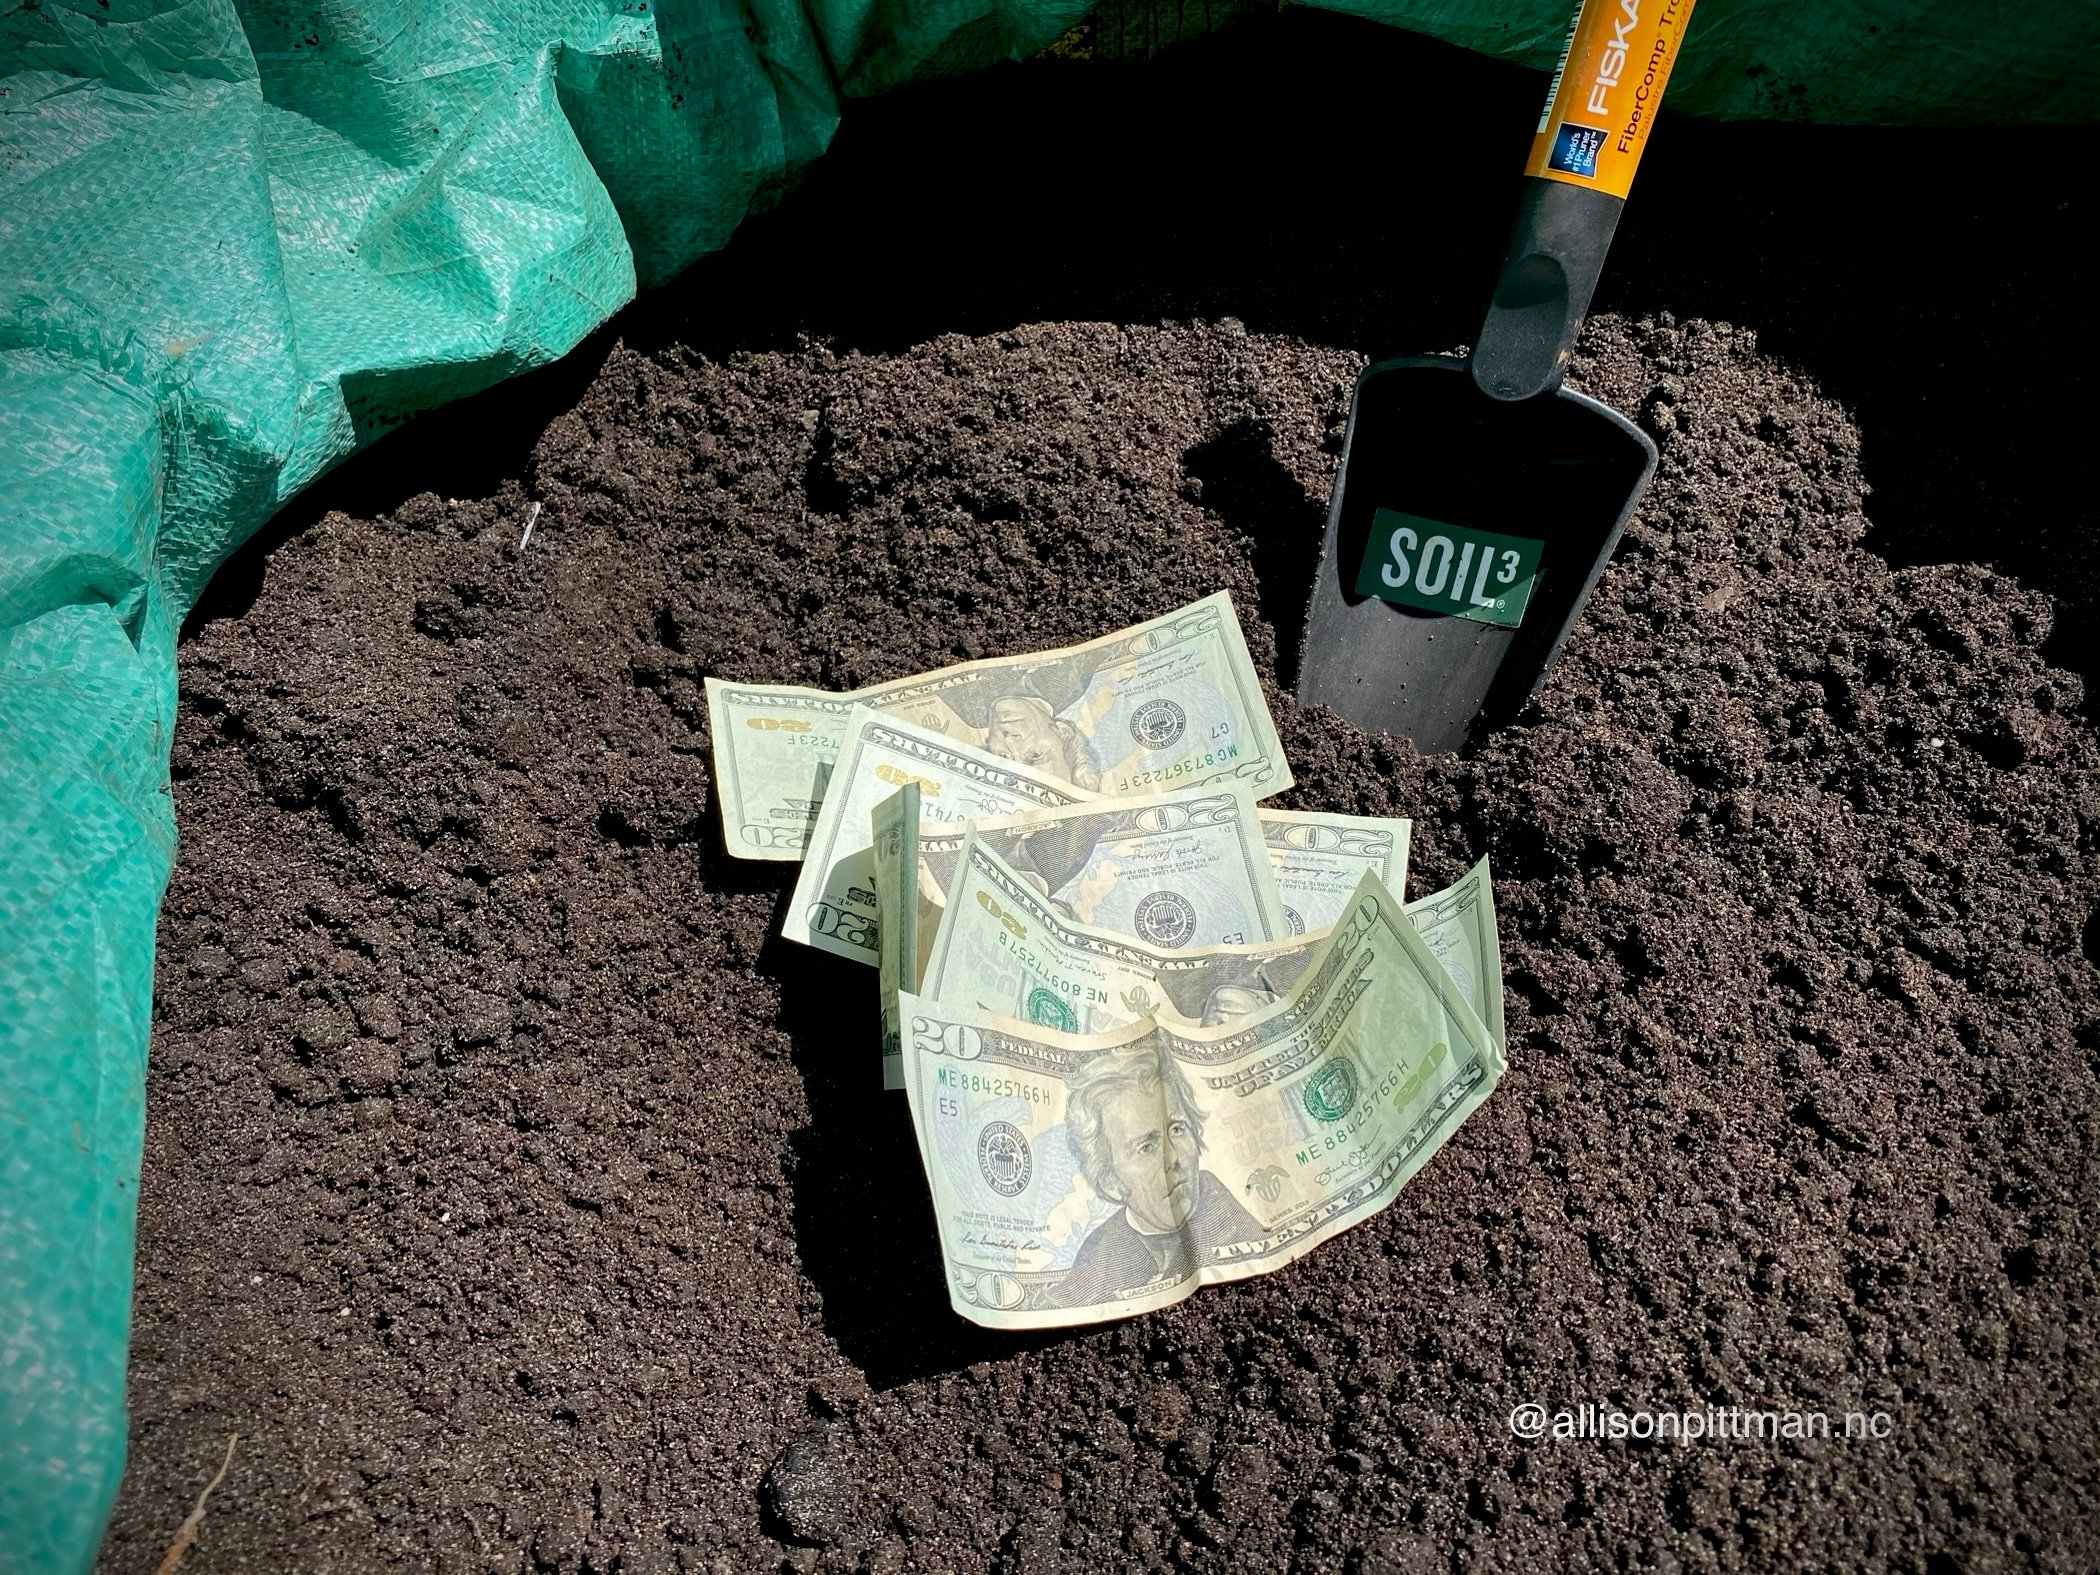 Adding Soil3 to the garden is like making a deposit into a banking account